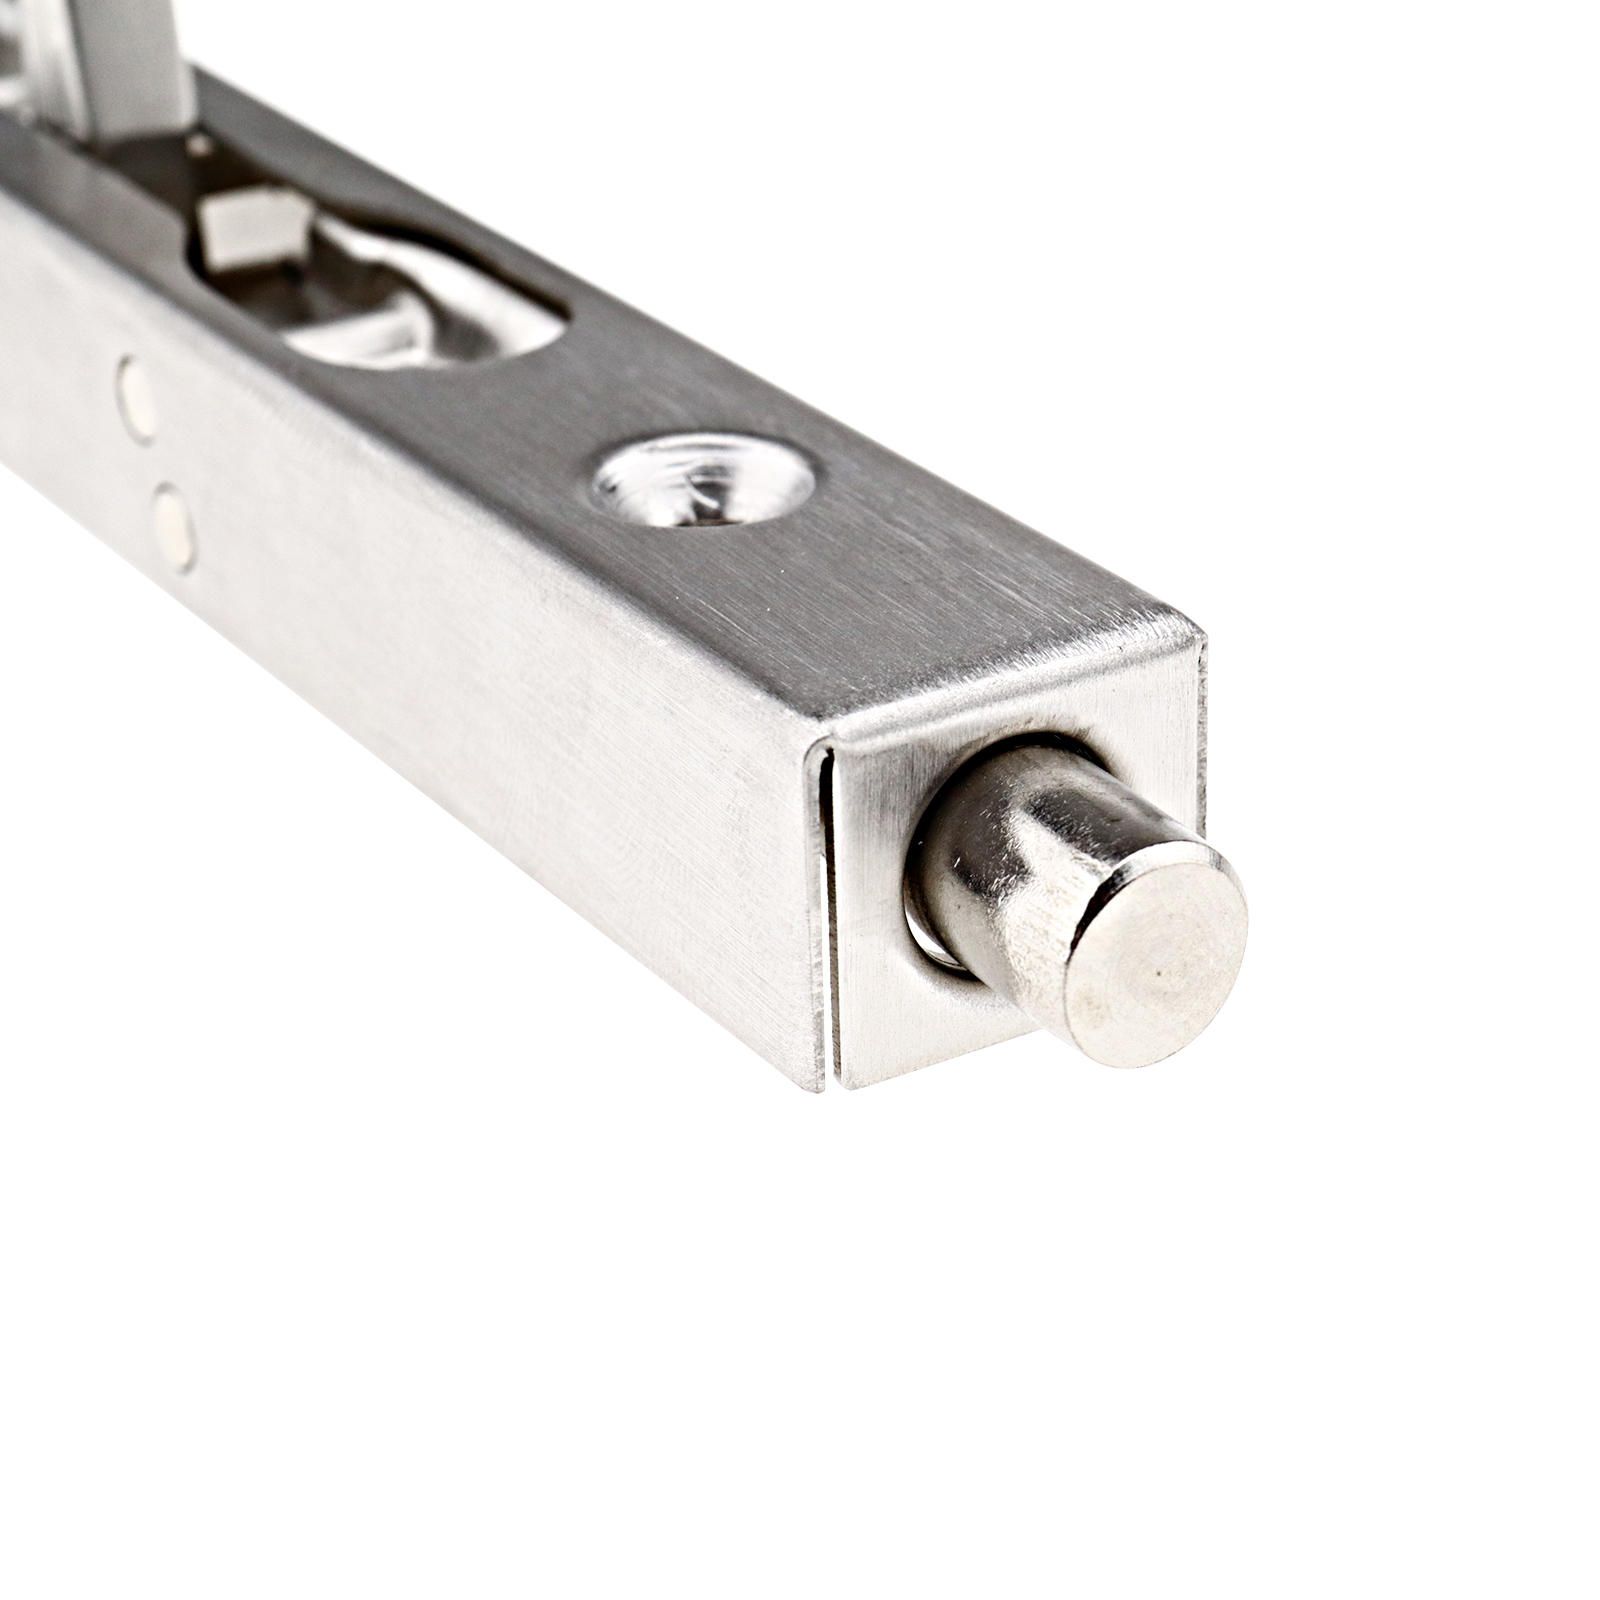 6 Stainless Steel Security Door Guard Lever Action Flush